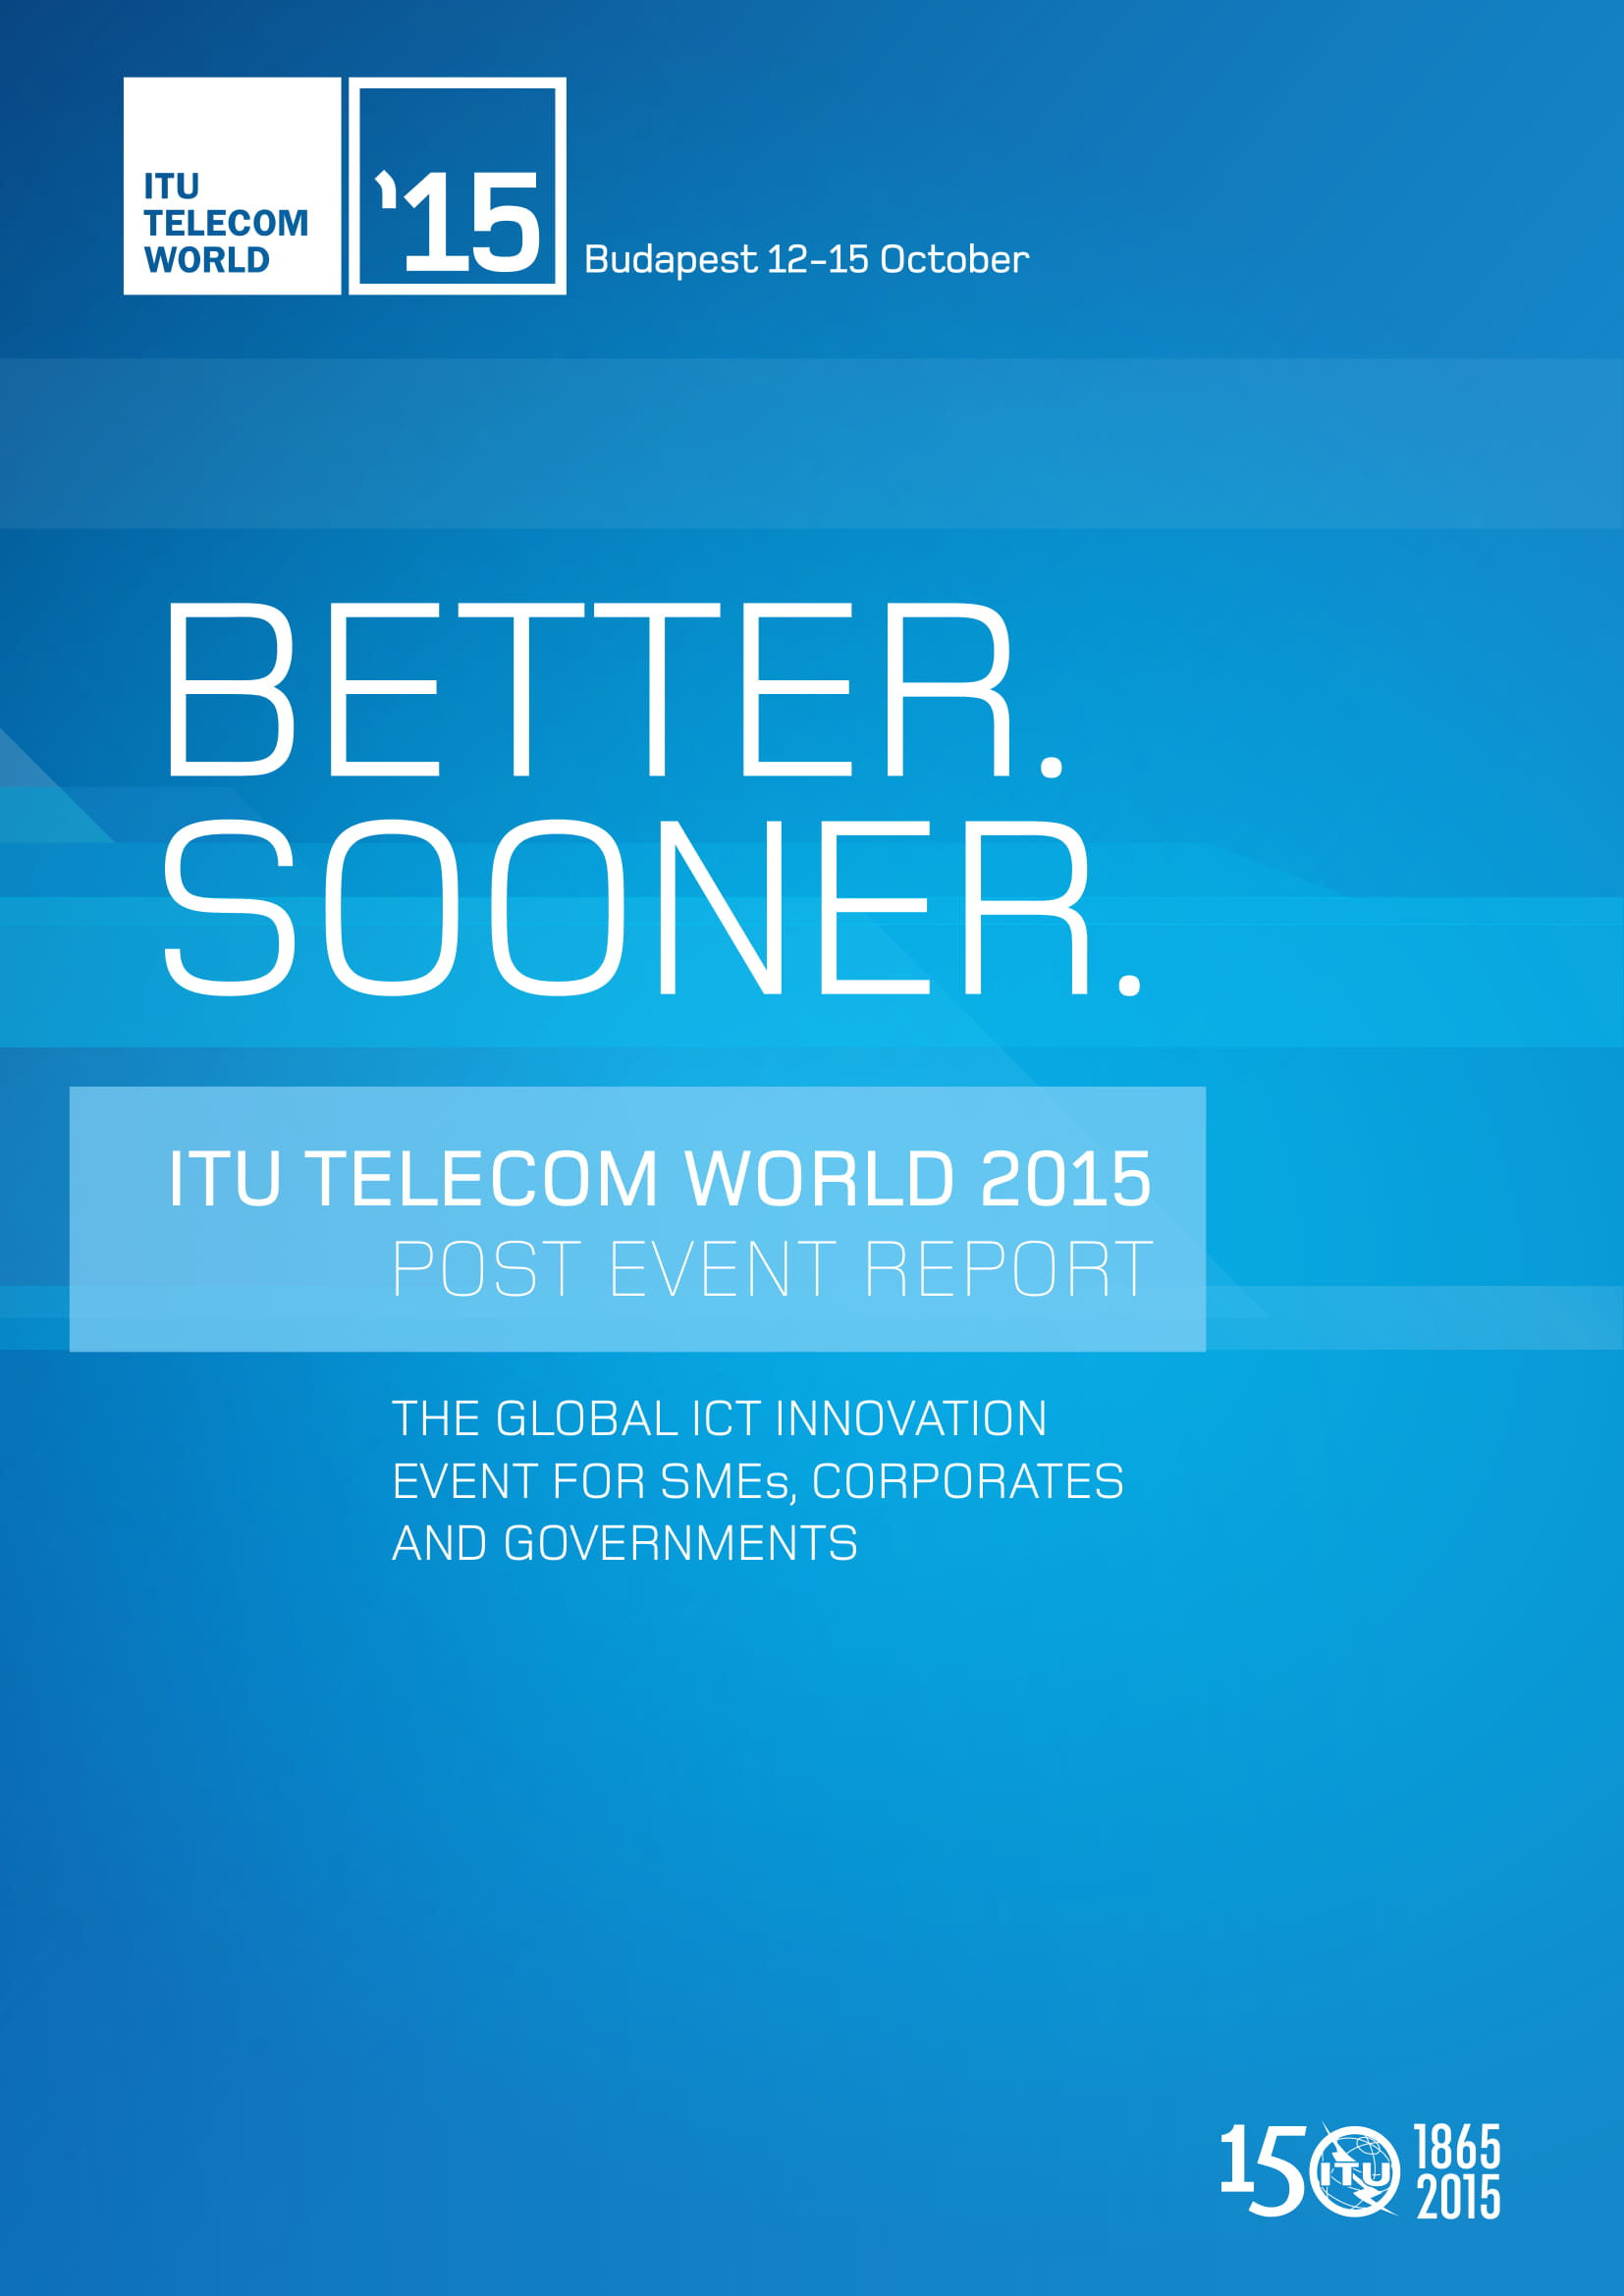 telecom world post event report example